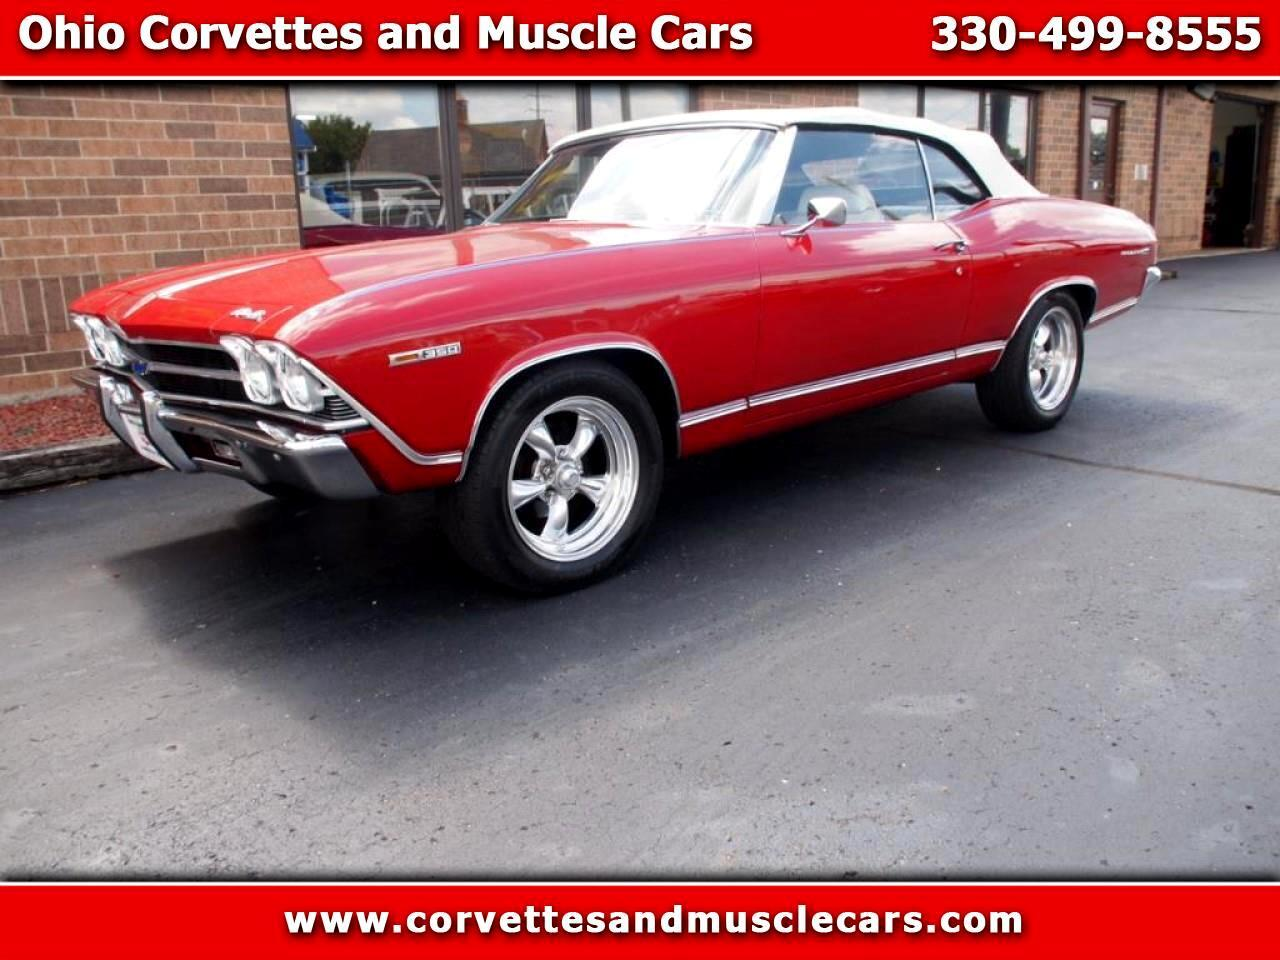 1969 Chevrolet Malibu (CC-1140148) for sale in North Canton, Ohio